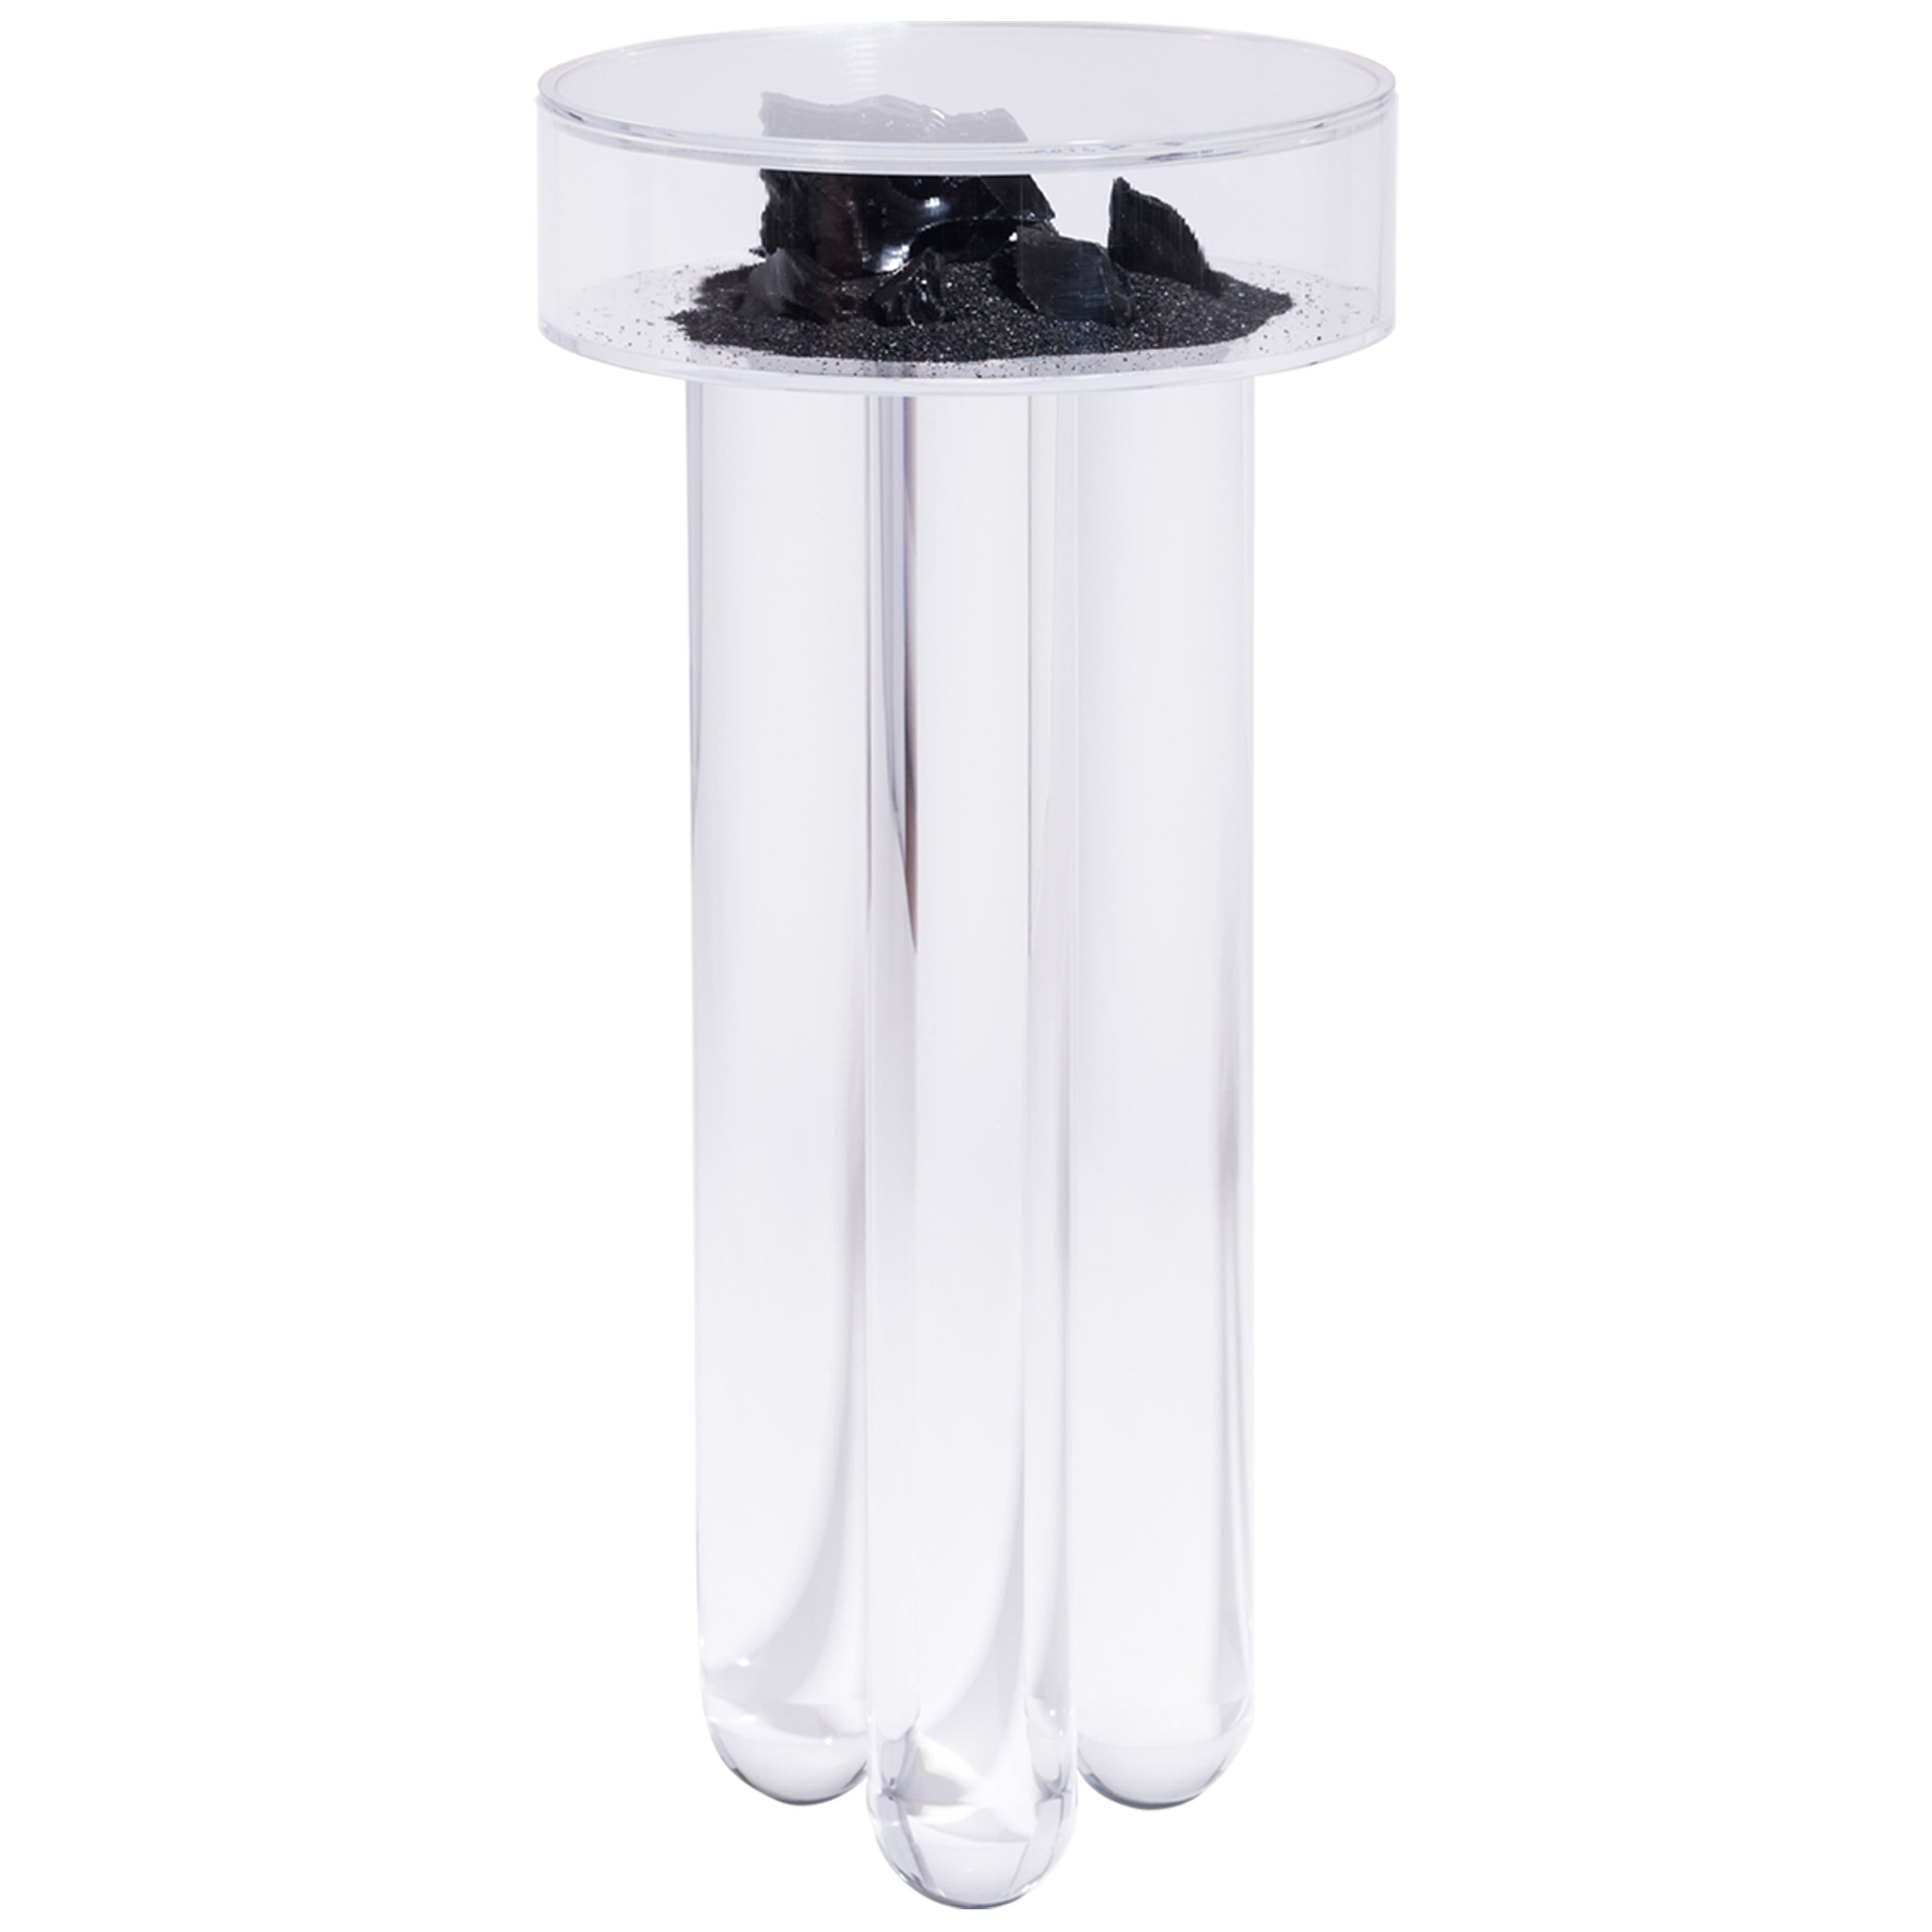 Vacation Table by Another Human, Contemporary Acrylic Side Table, Dark Version